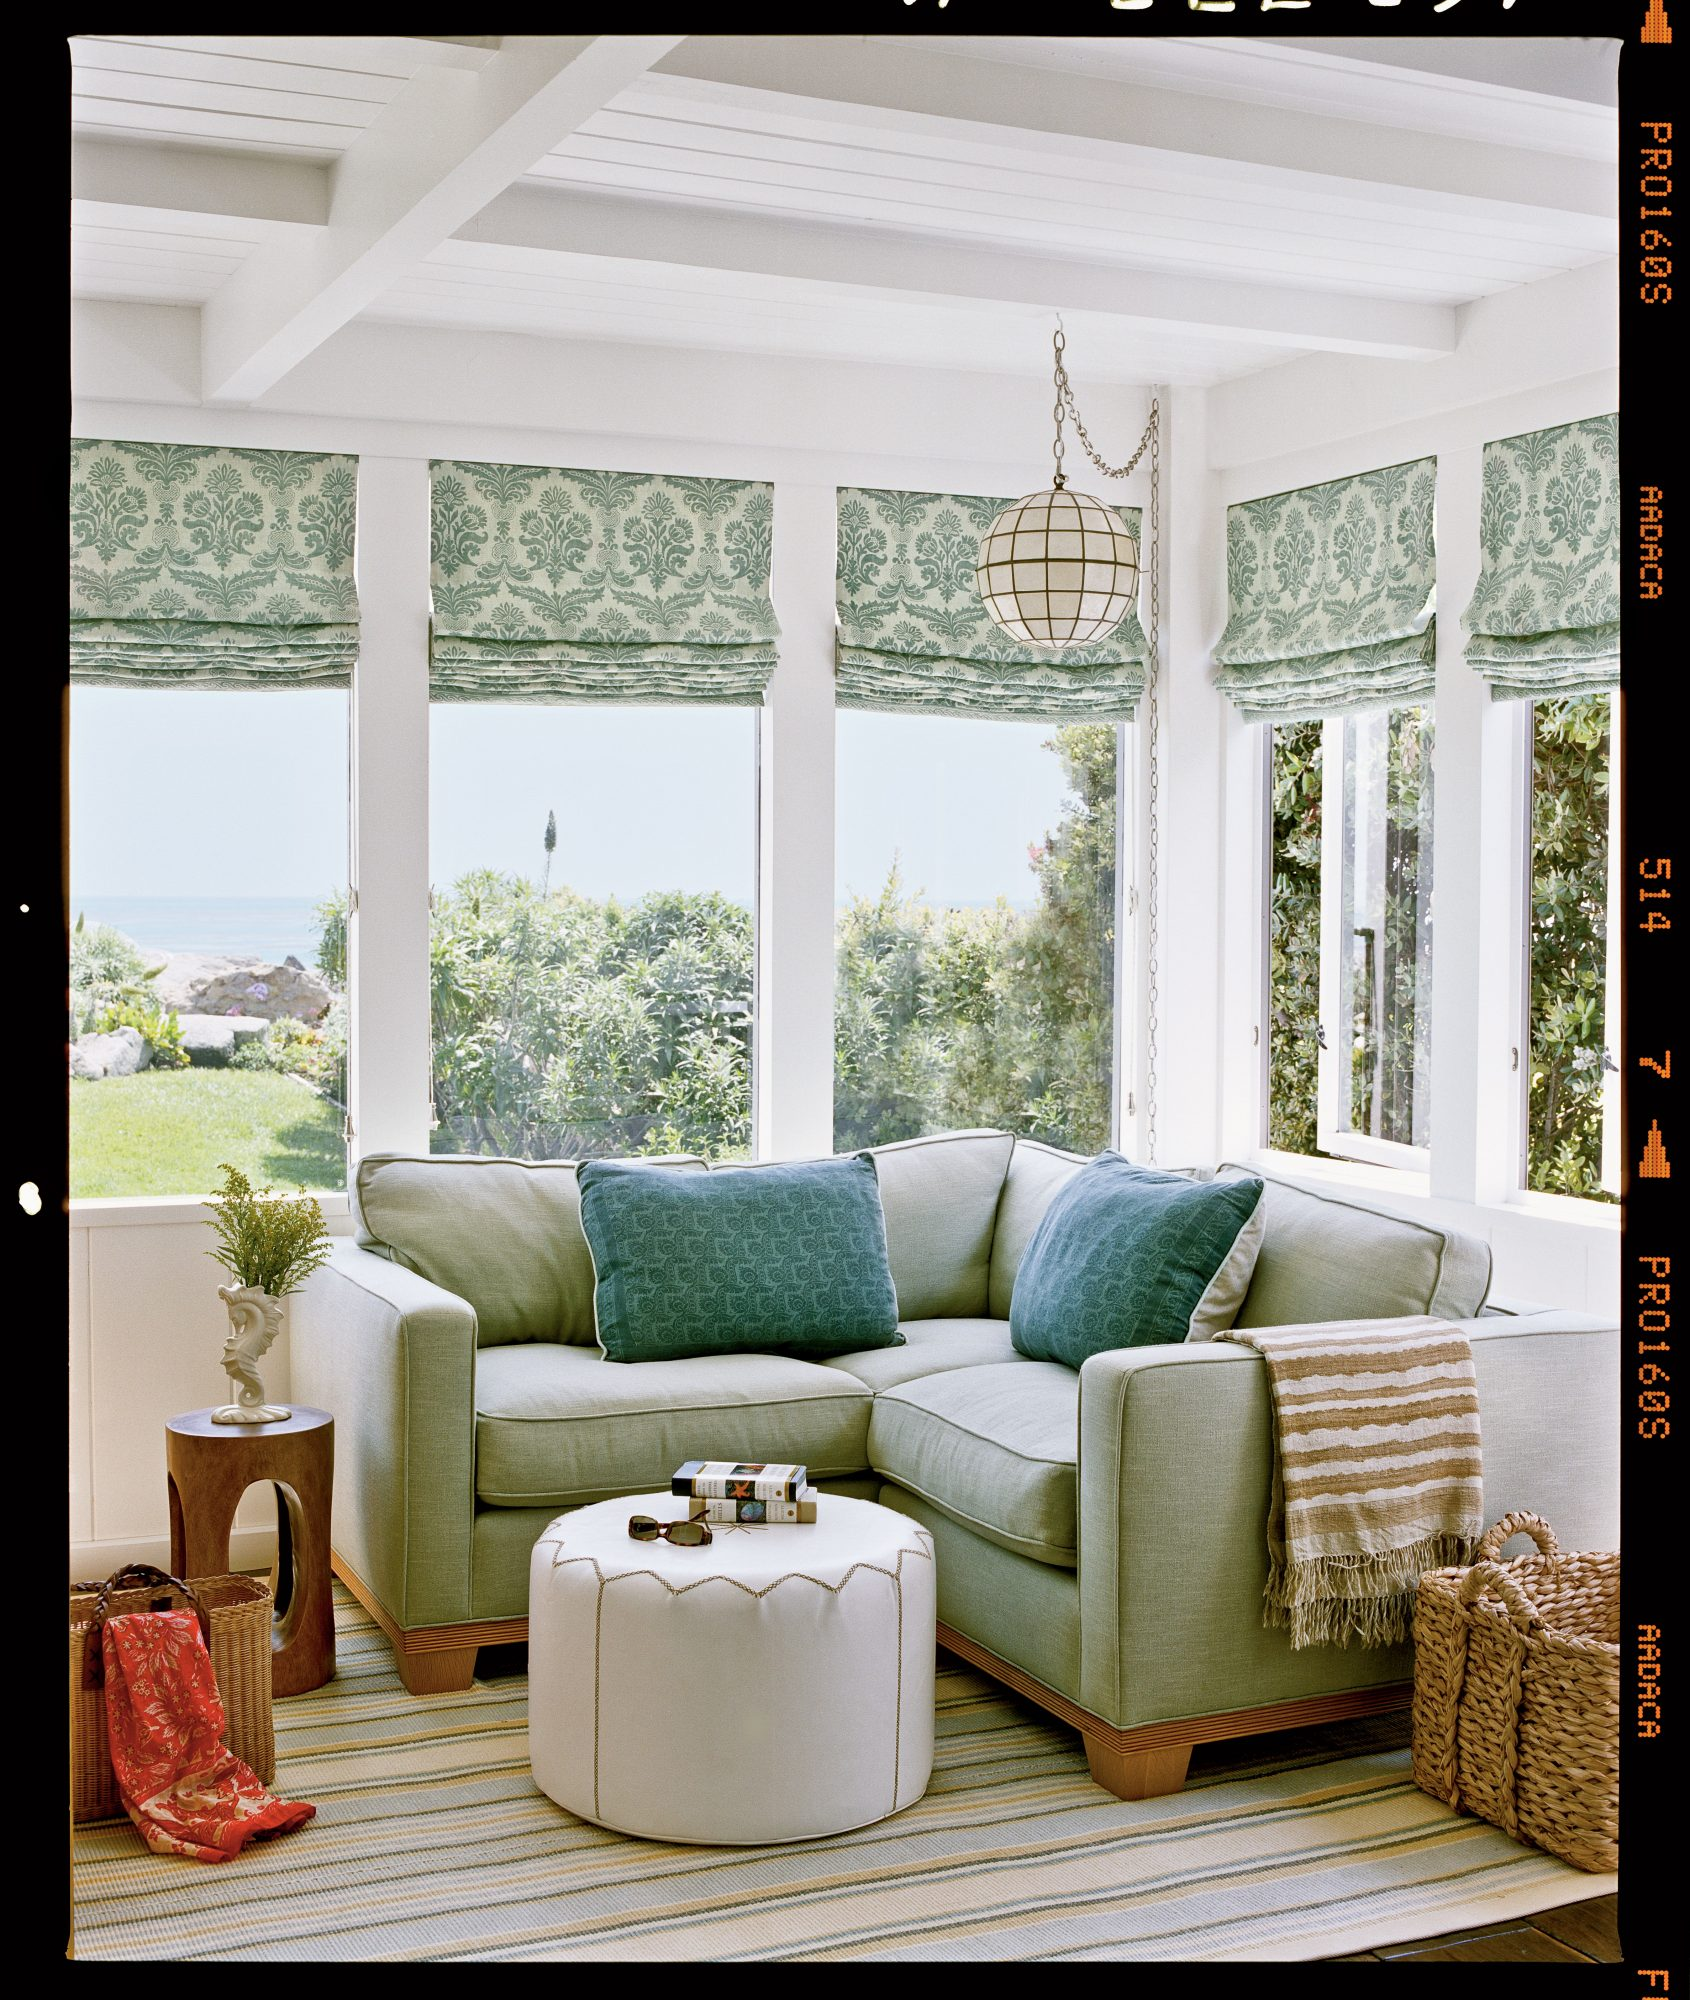 This custom sectional piece in a soothing moss green hue fits snugly into a window-filled corner of this room. A stylish large-scale pattern like this traditional damask lends a feeling of warmth to any room.